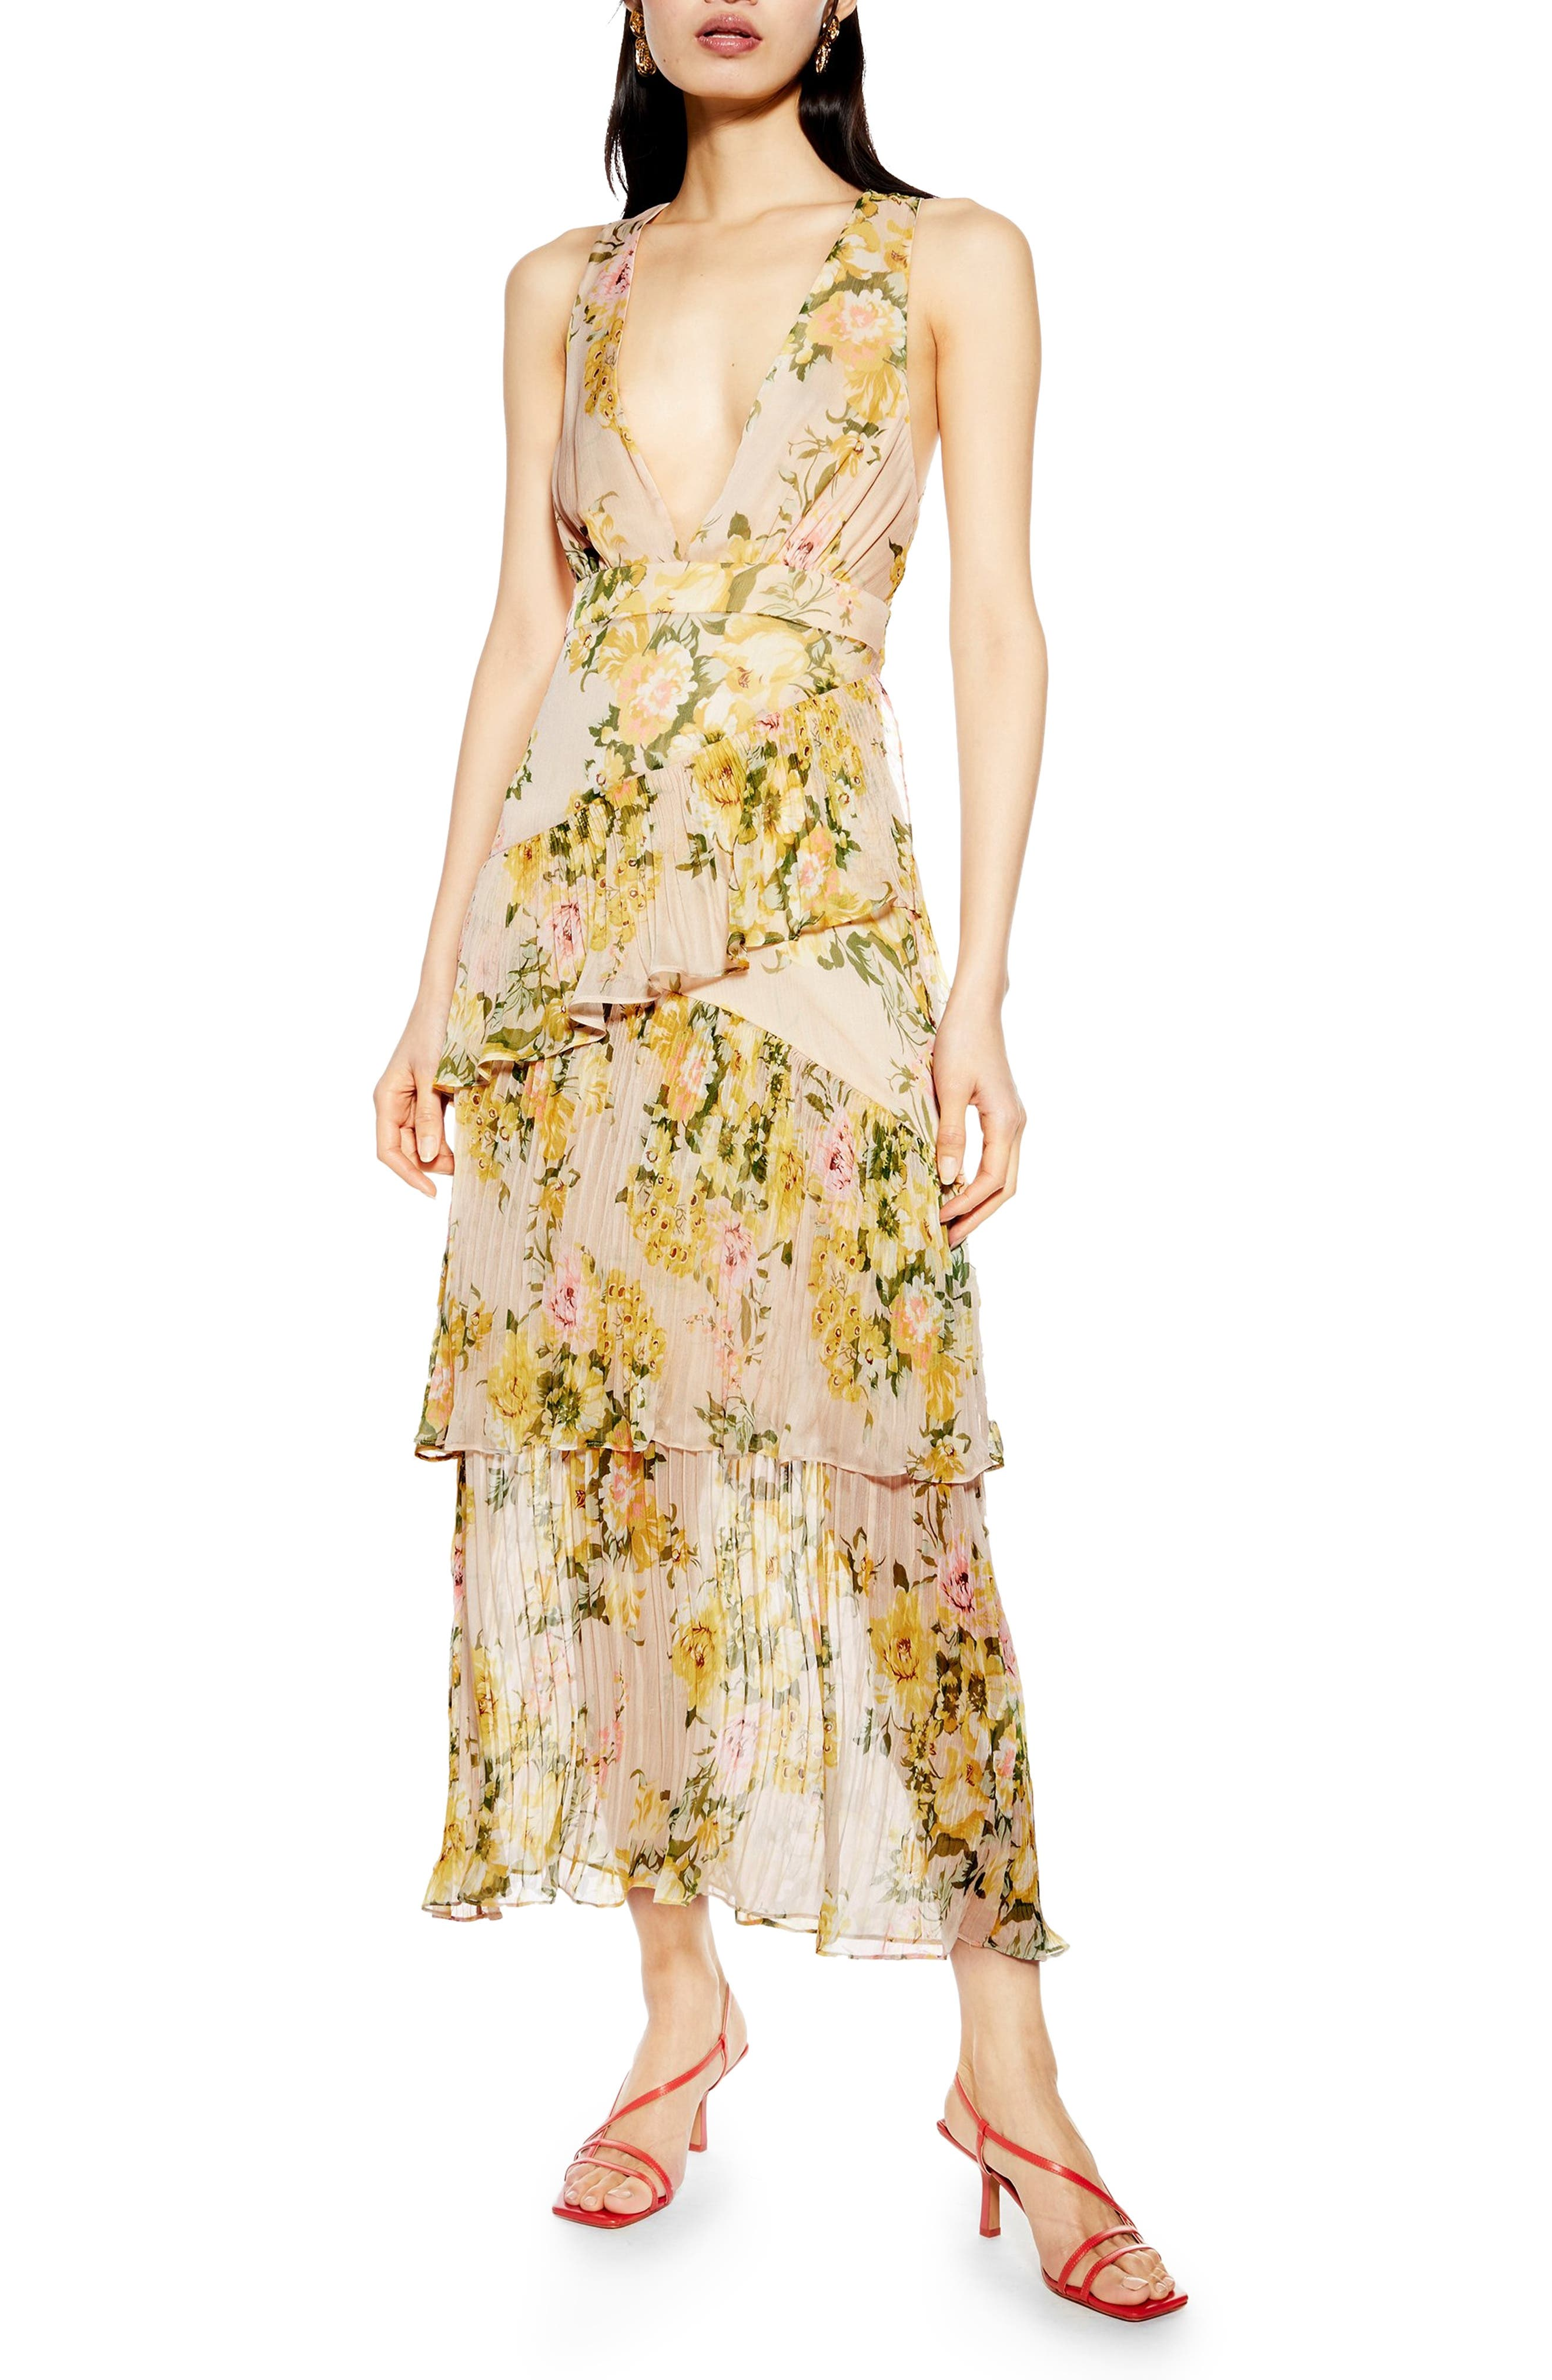 Topshop Floral Print Pleated Tiered Maxi Dress, US (fits like 10-12) - Beige